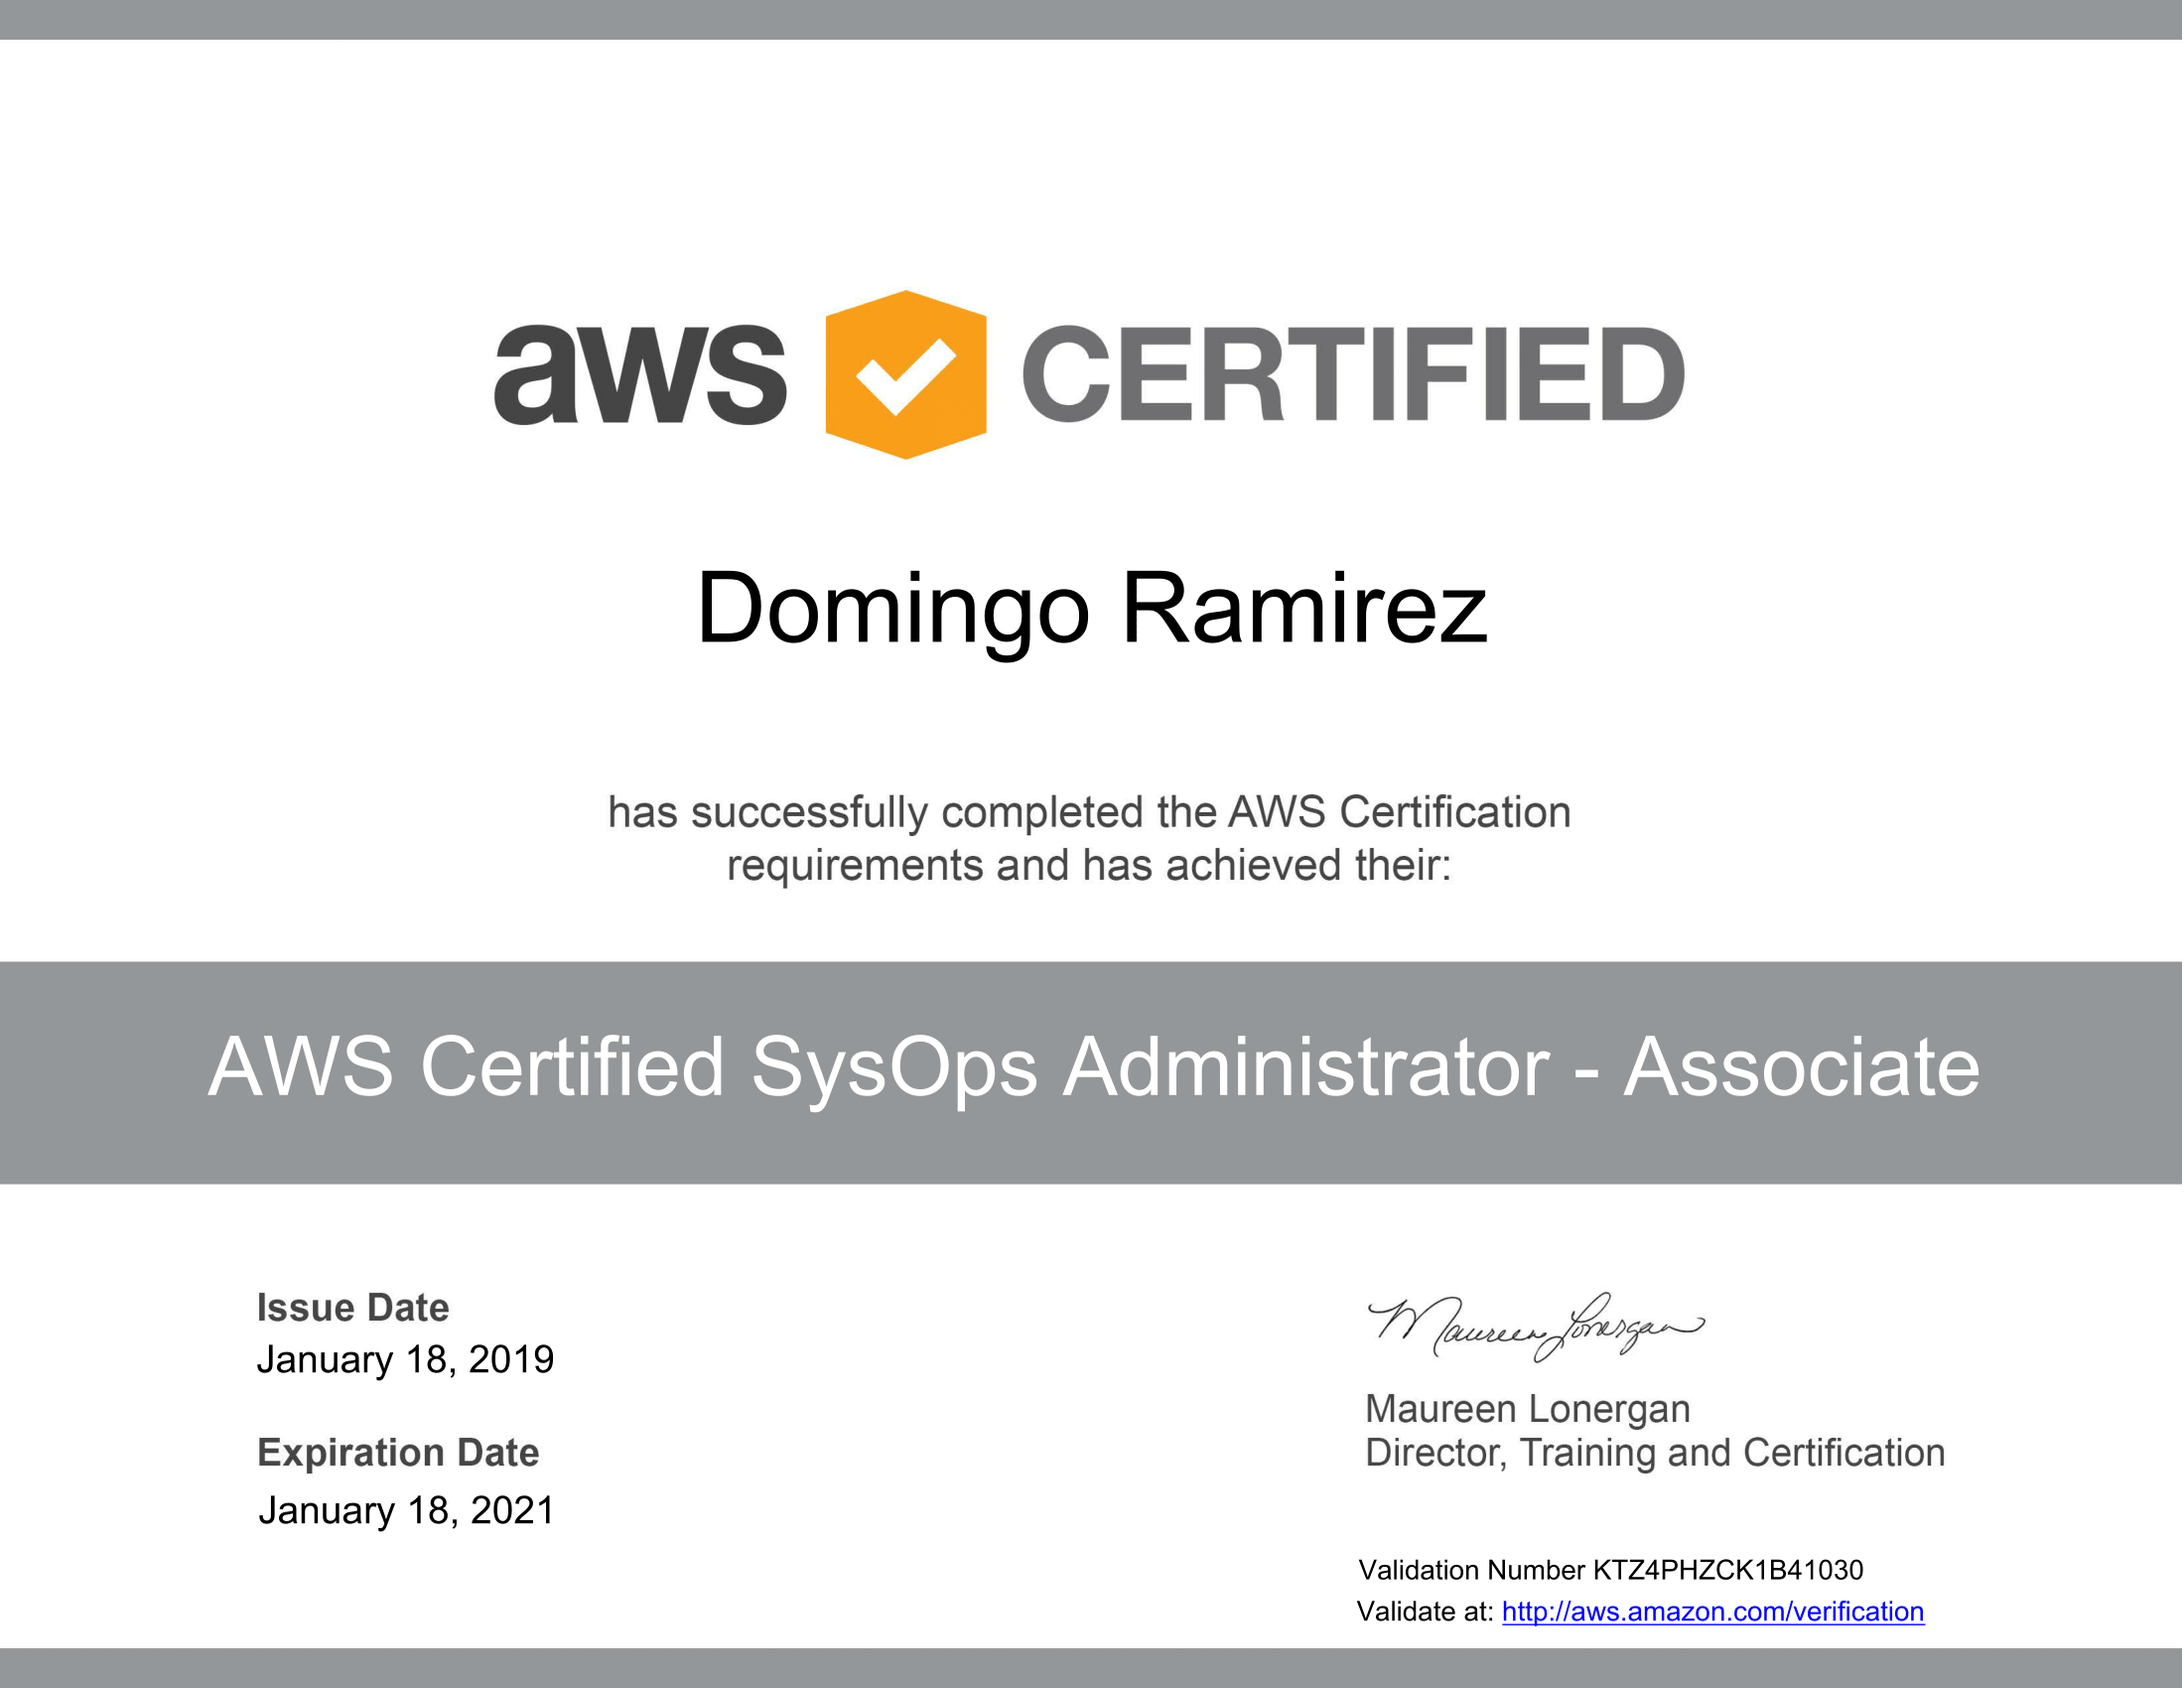 AWS Certified SysOps Administrator - Associate certificate-1